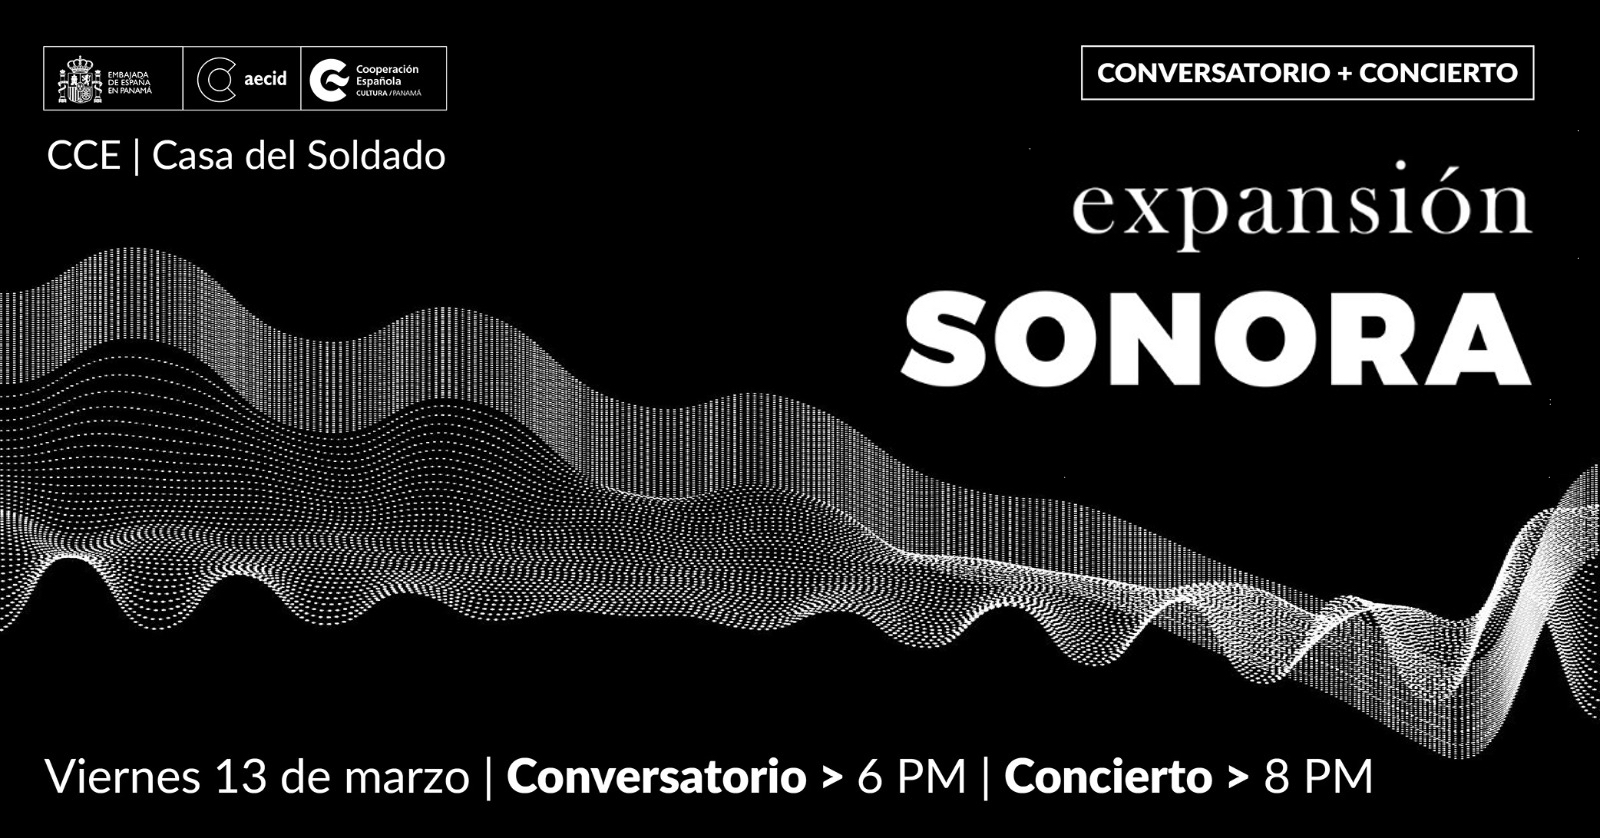 Expansion sonora